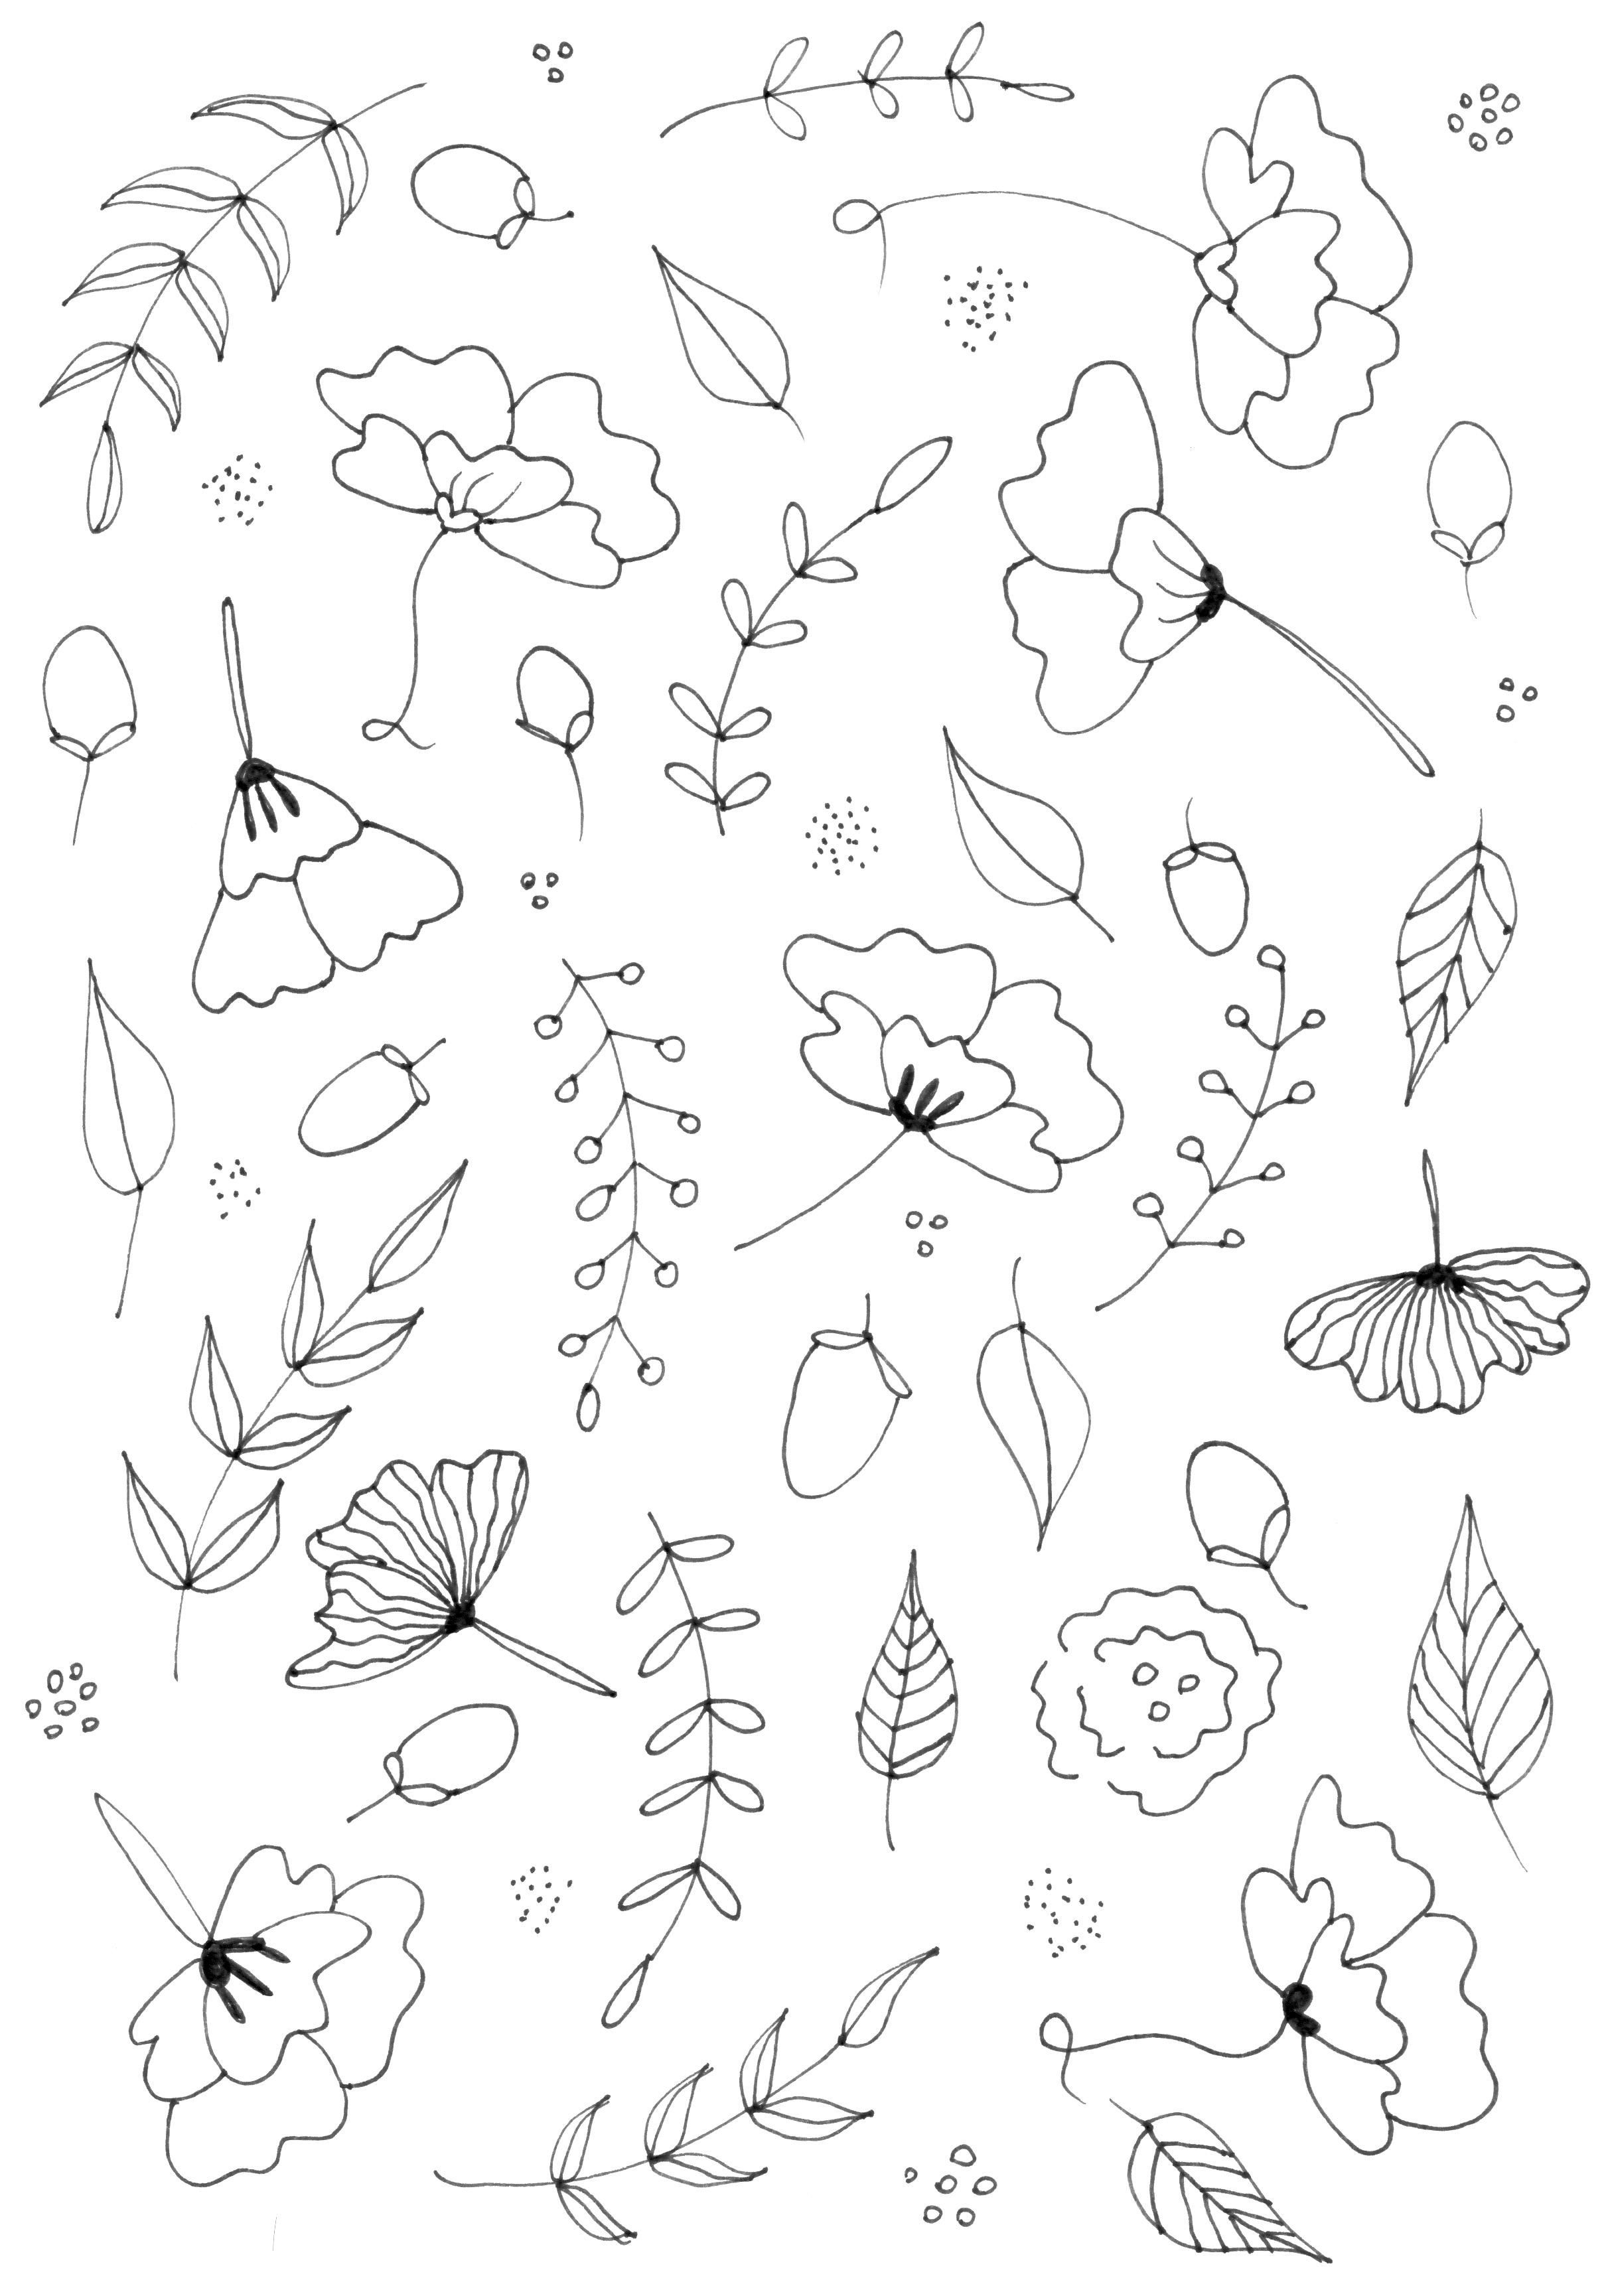 Drawing Smooth Lines Quiz : Botanical line drawing practice and pattern skillshare